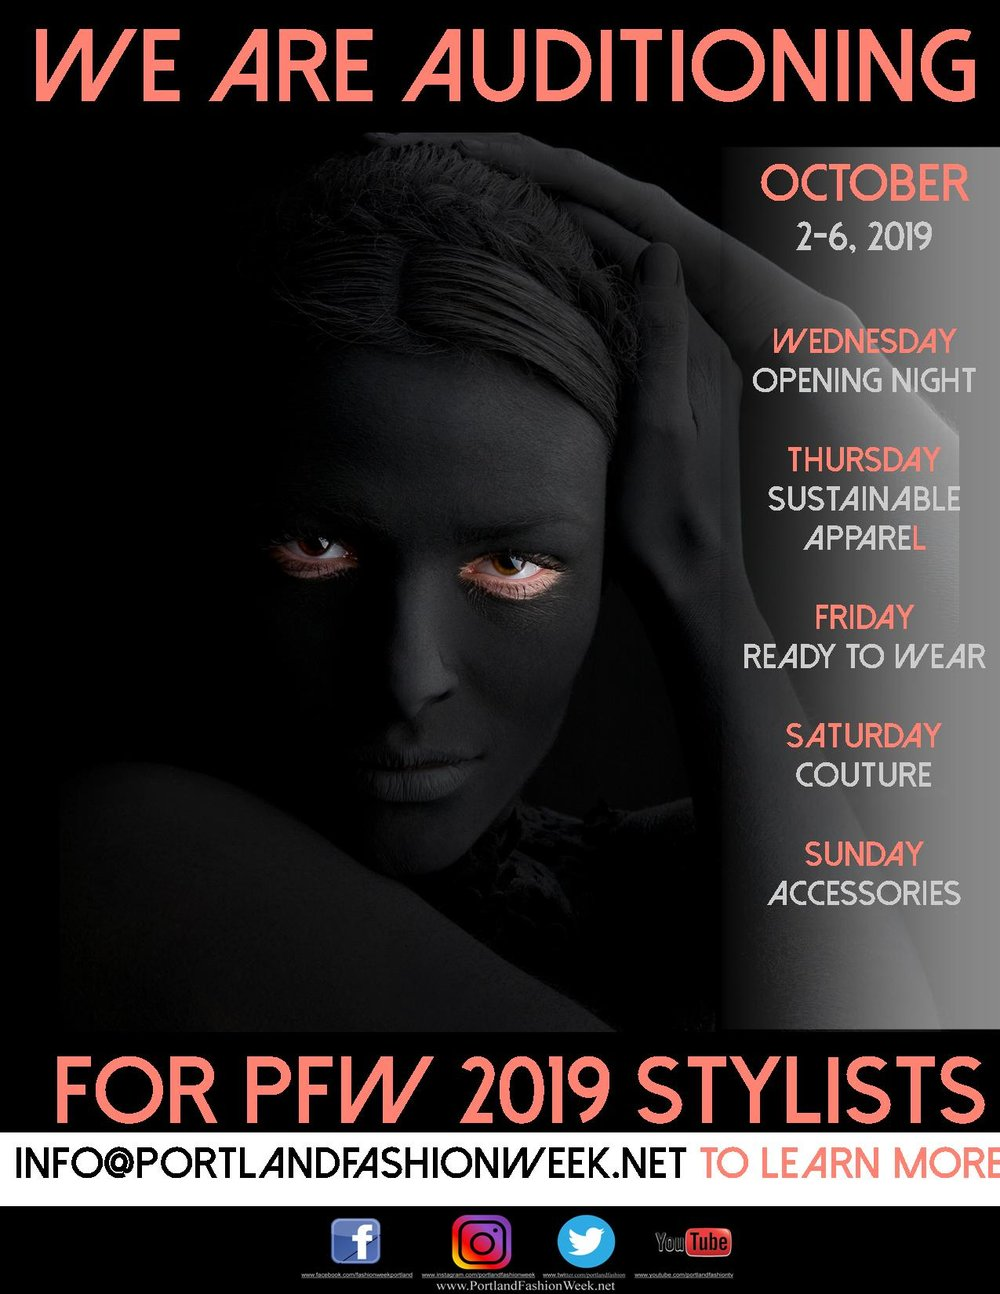 Portland Fashion Week 2019 - is seeking the most talented Make-up Artists and Hair-stylists in the Portland Metro region to work with the world's ONLY carbon negative fashion week.email us at info@portlandfashionweek.net to learn more!